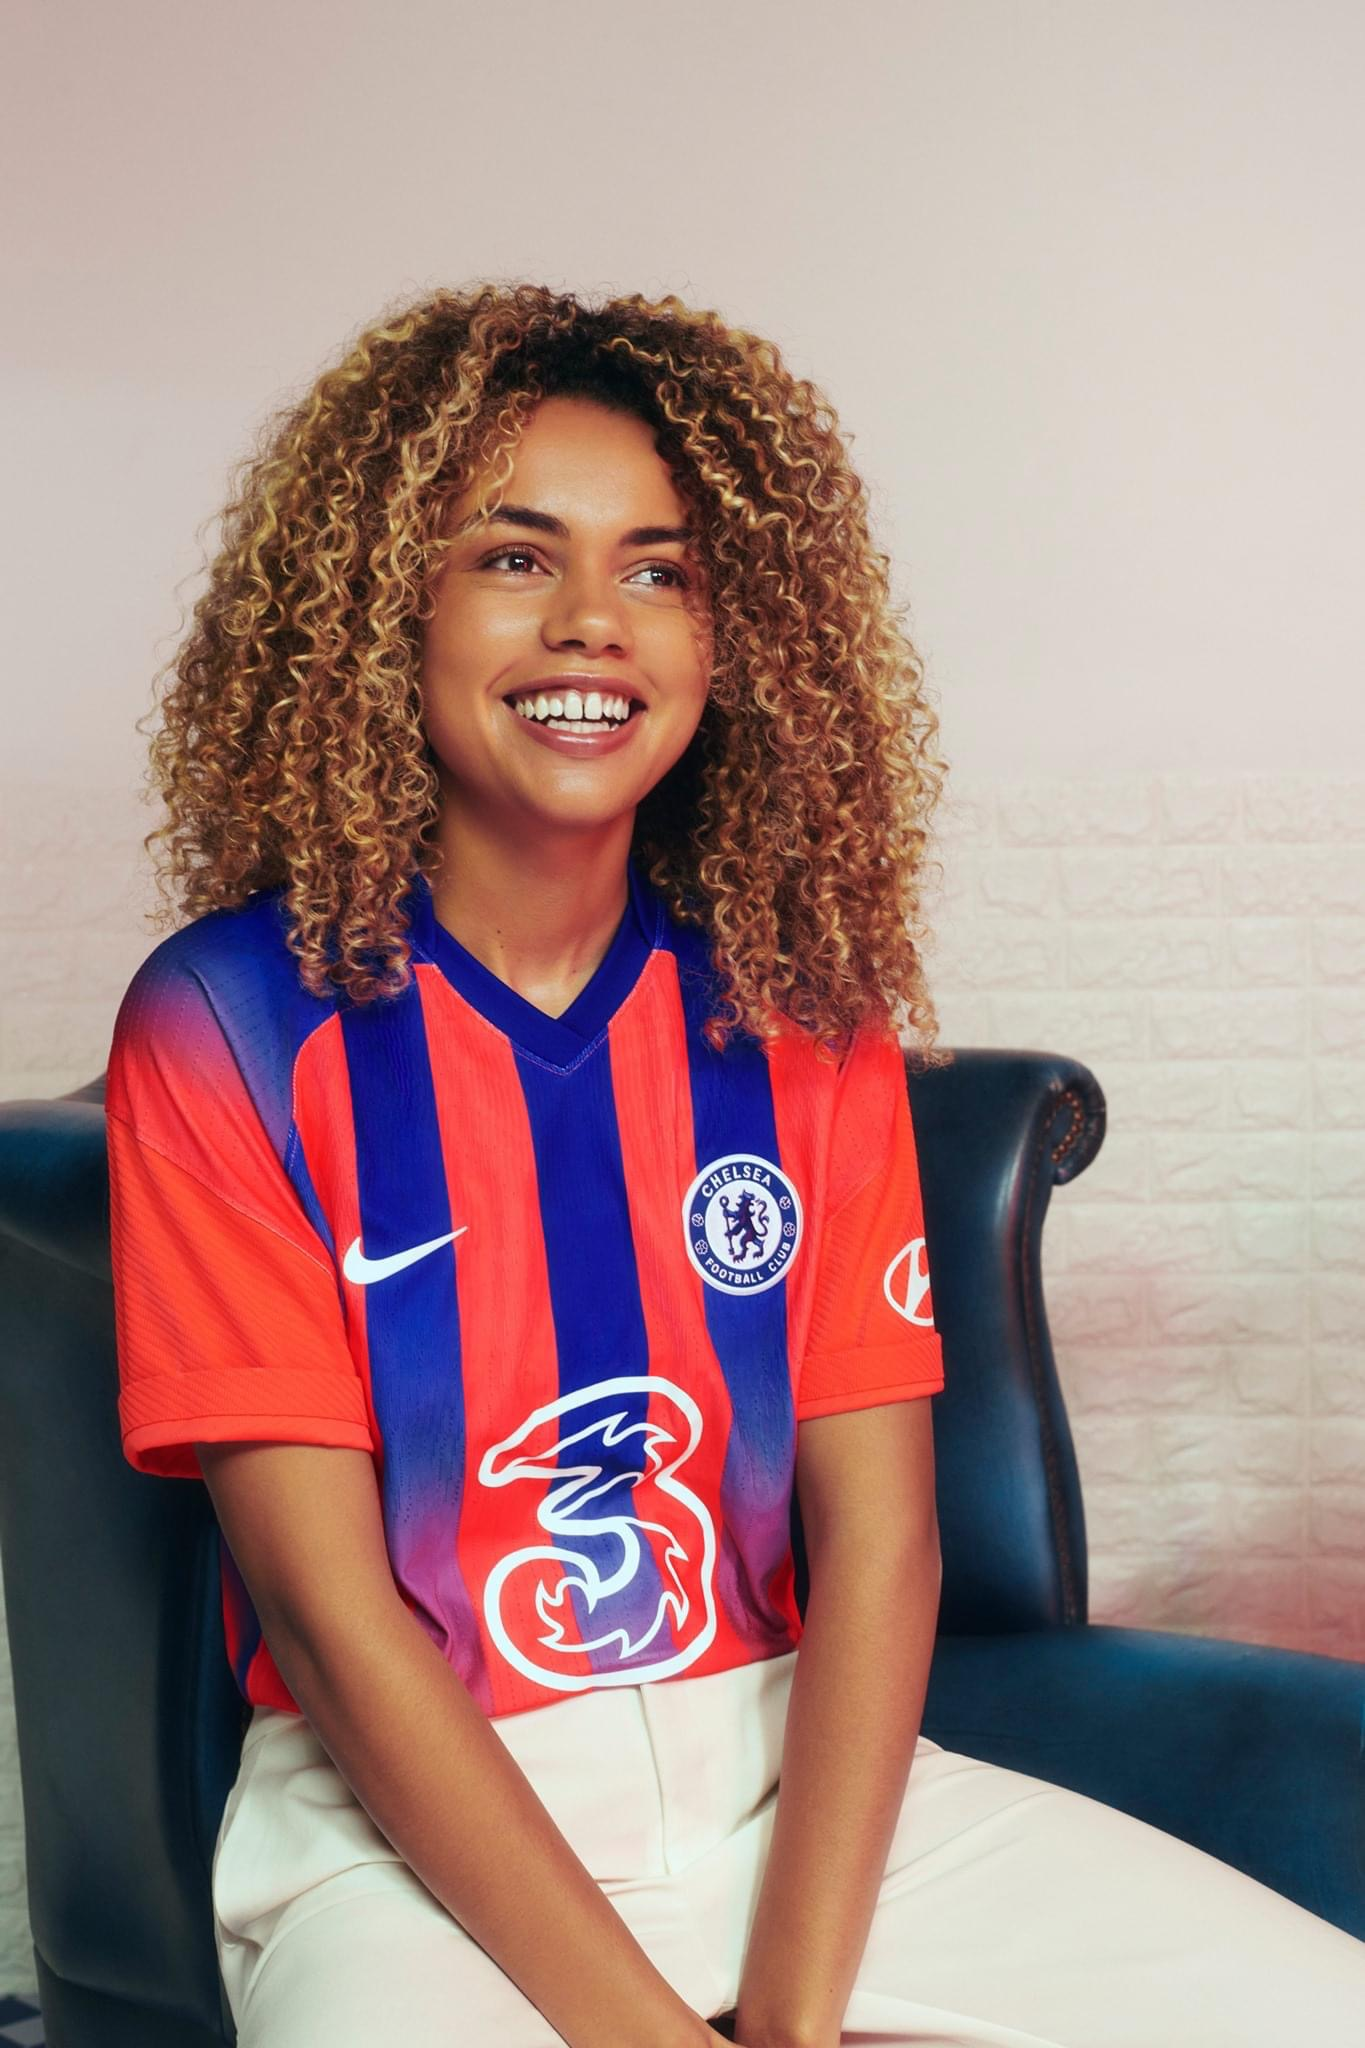 Chelsea Releases Their 2020/21 Third Jersey With Red And Blue Stripes (Photos)